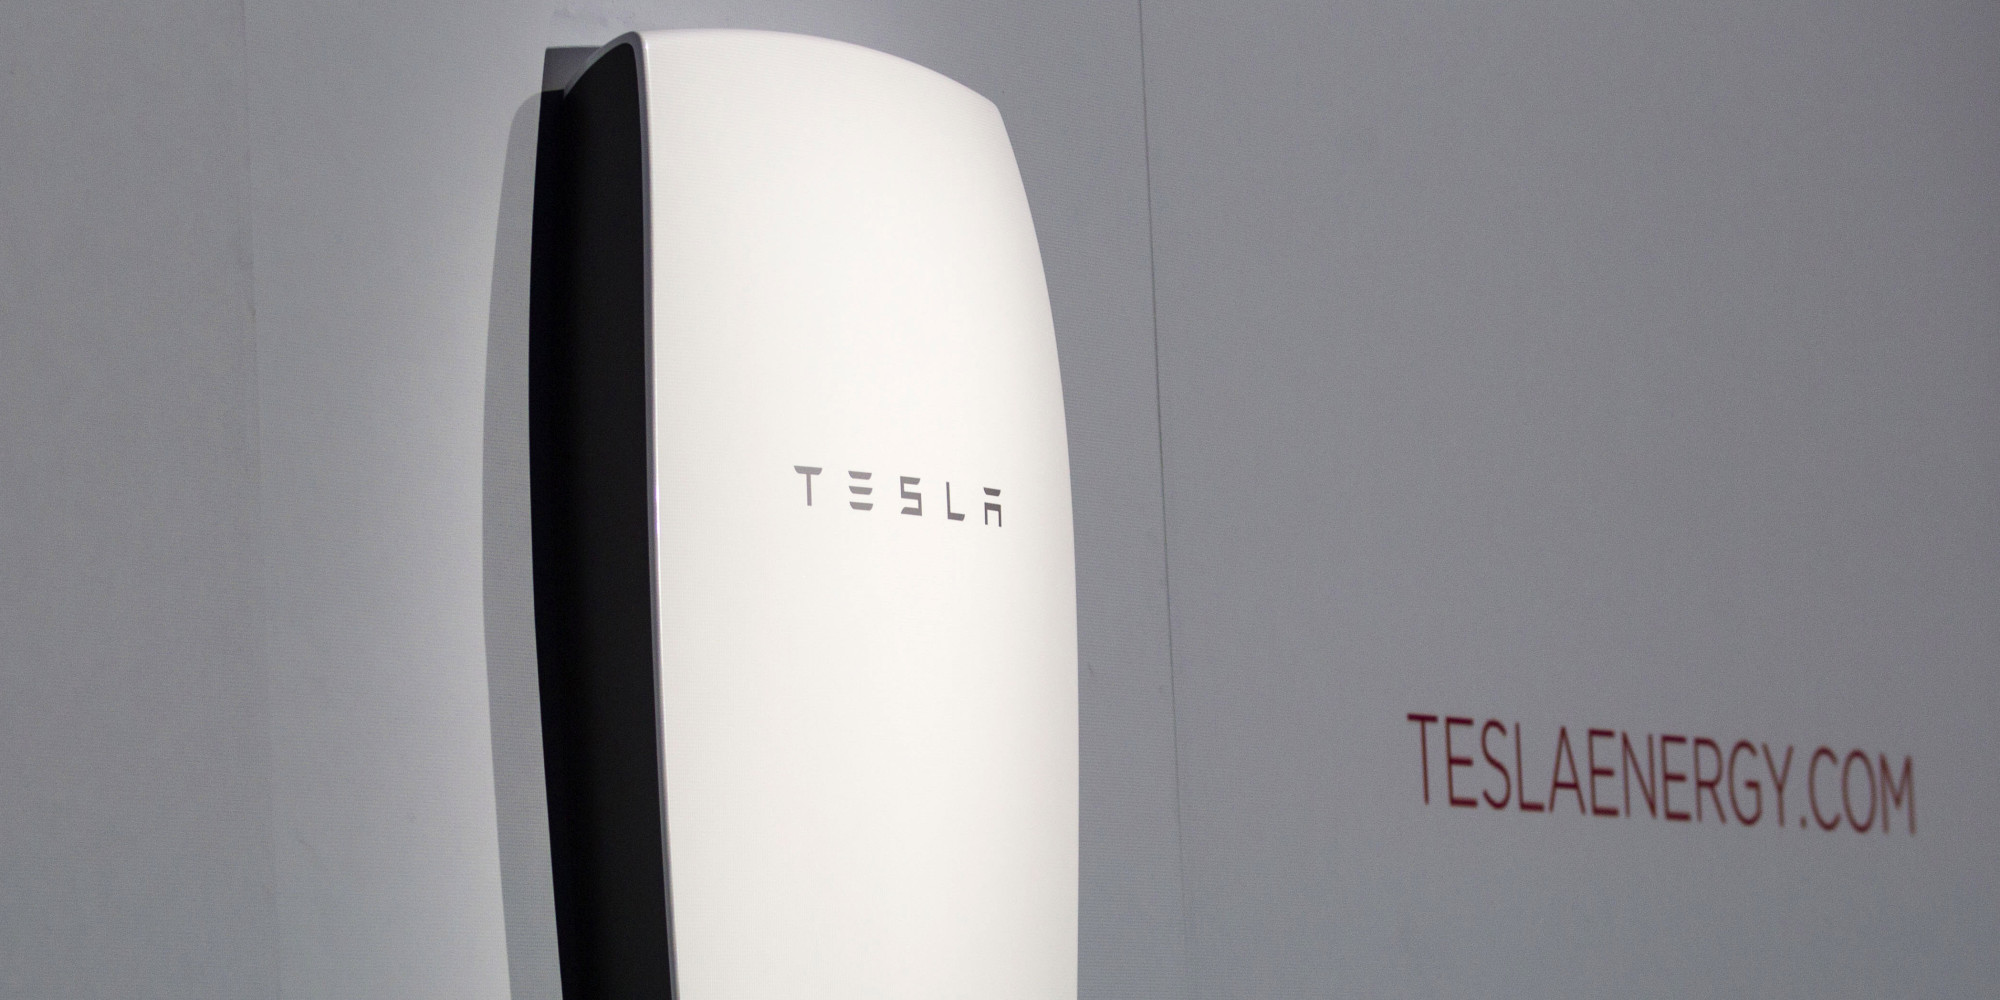 "Tesla's newest product ""Powerwall"" is unveiled on stage in Hawthorne, Calif., Thursday, April 30, 2015. Tesla CEO Elon Musk is trying to steer his electric car company's battery technology into homes and businesses as part of an elaborate plan to reshape the power grid with millions of small power plants made of solar panels on roofs and batteries in garages. (AP Photo/Ringo H.W. Chiu)"